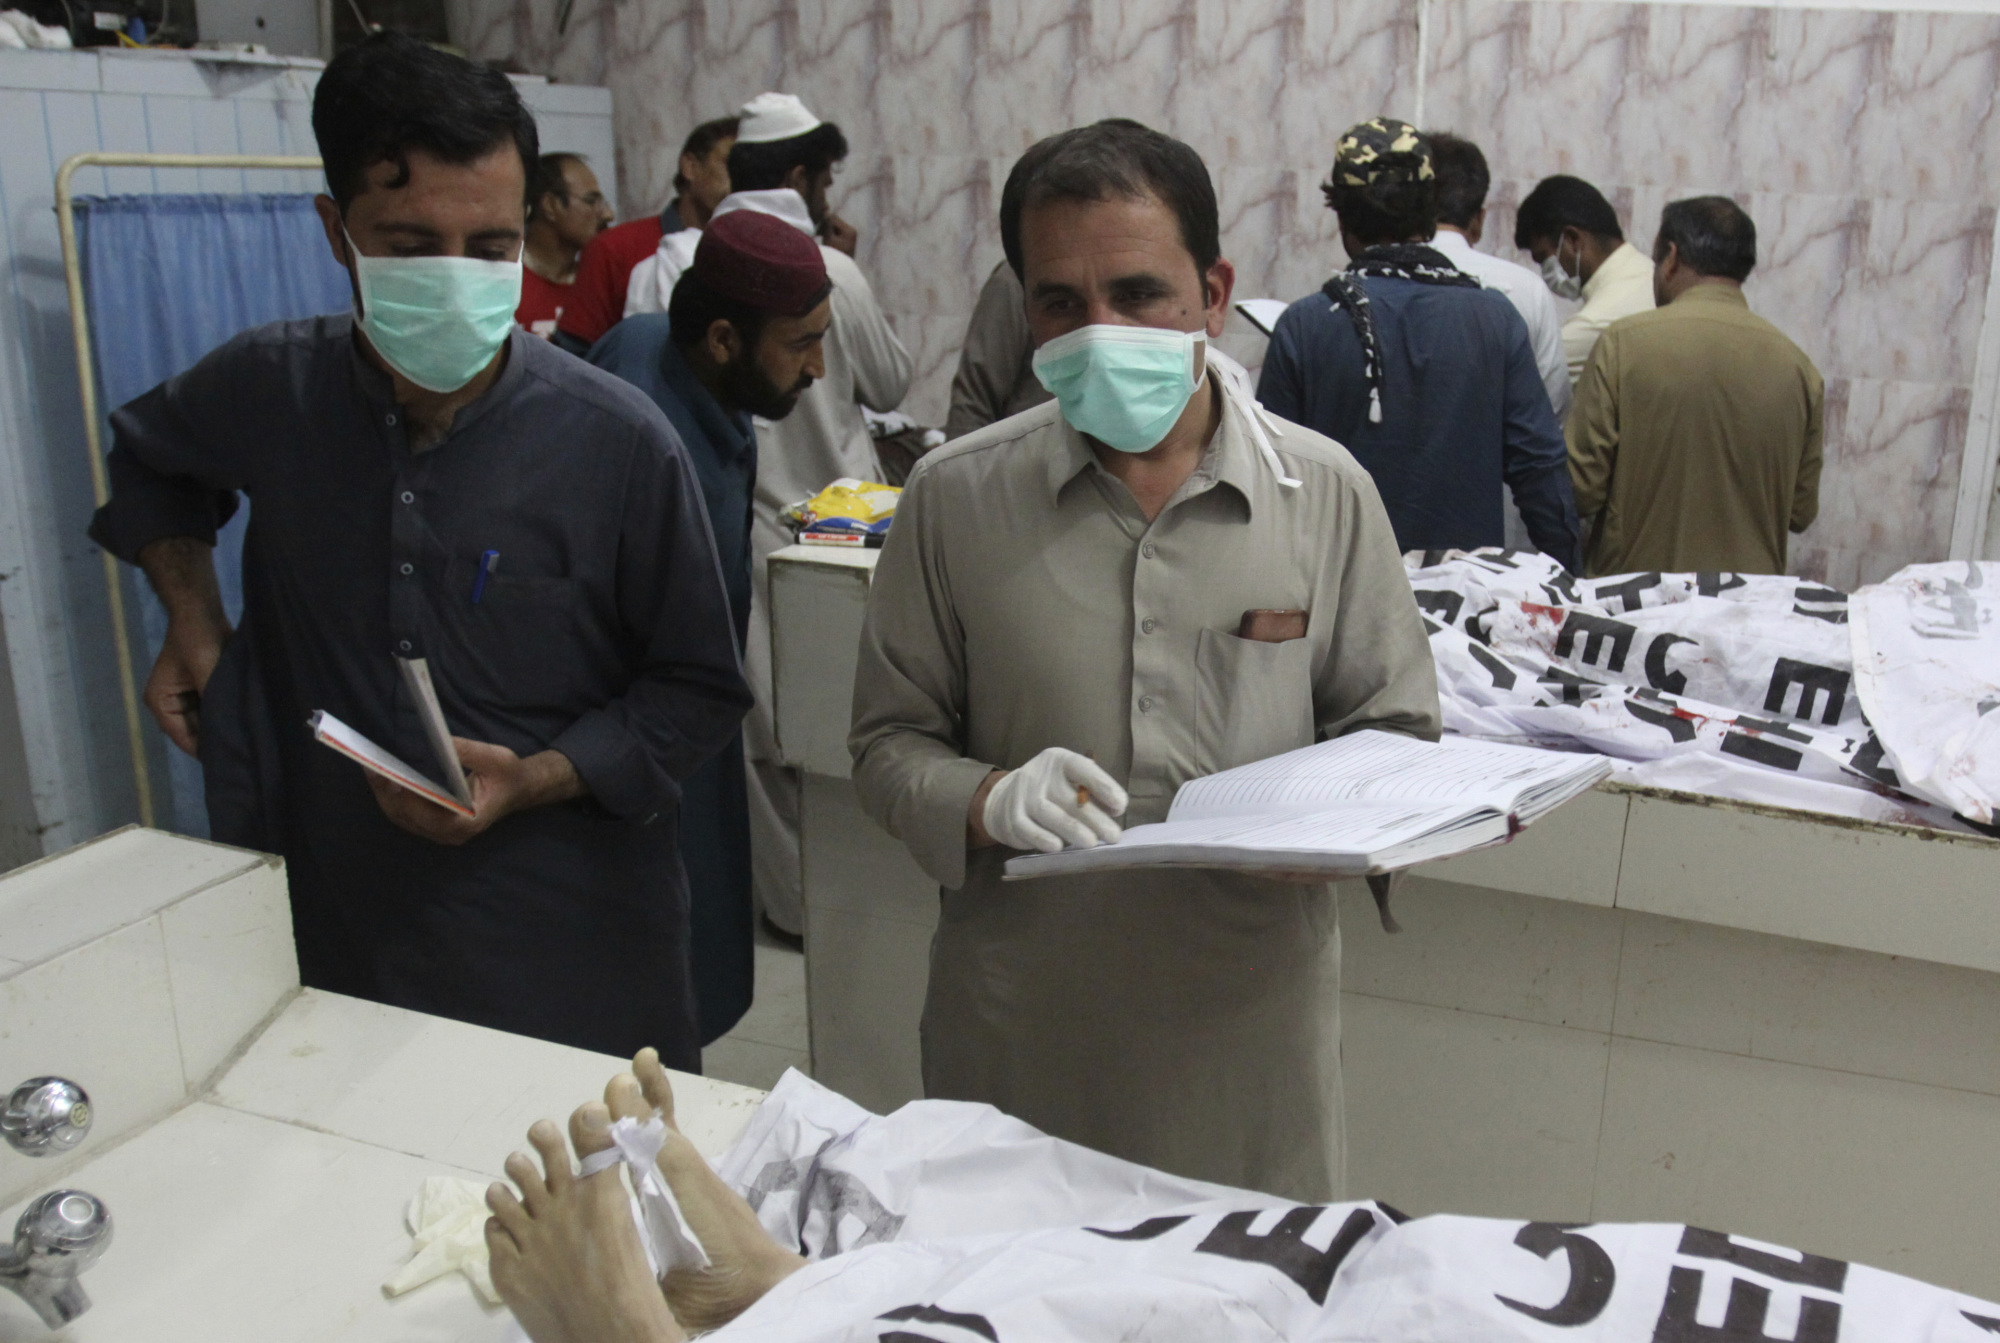 Pakistan hospital staff collect information on alleged terrorists killed by security forces, at a mortuary in Quetta, Pakistan, Thursday. Pakistani police say security forces acting on intelligence raided a militant hideout in the town of Mastung in southwestern Baluchistan province, triggering a shootout that killed many suspects. | AP